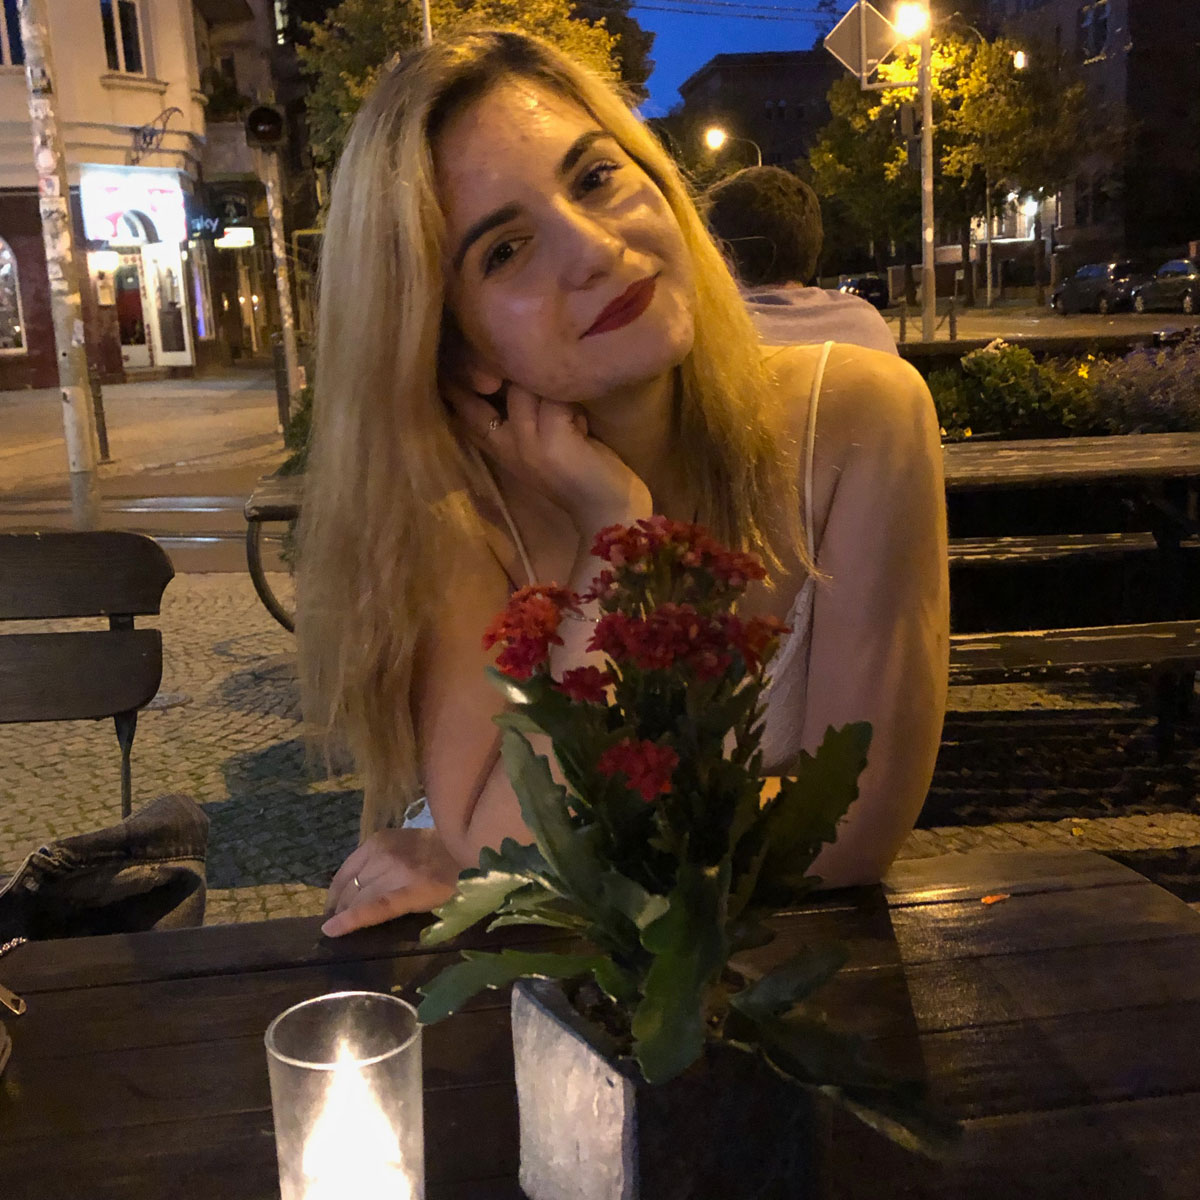 Sofija Paneva at an outdoor restaurant table at nighttime with a flickering candle in front of her